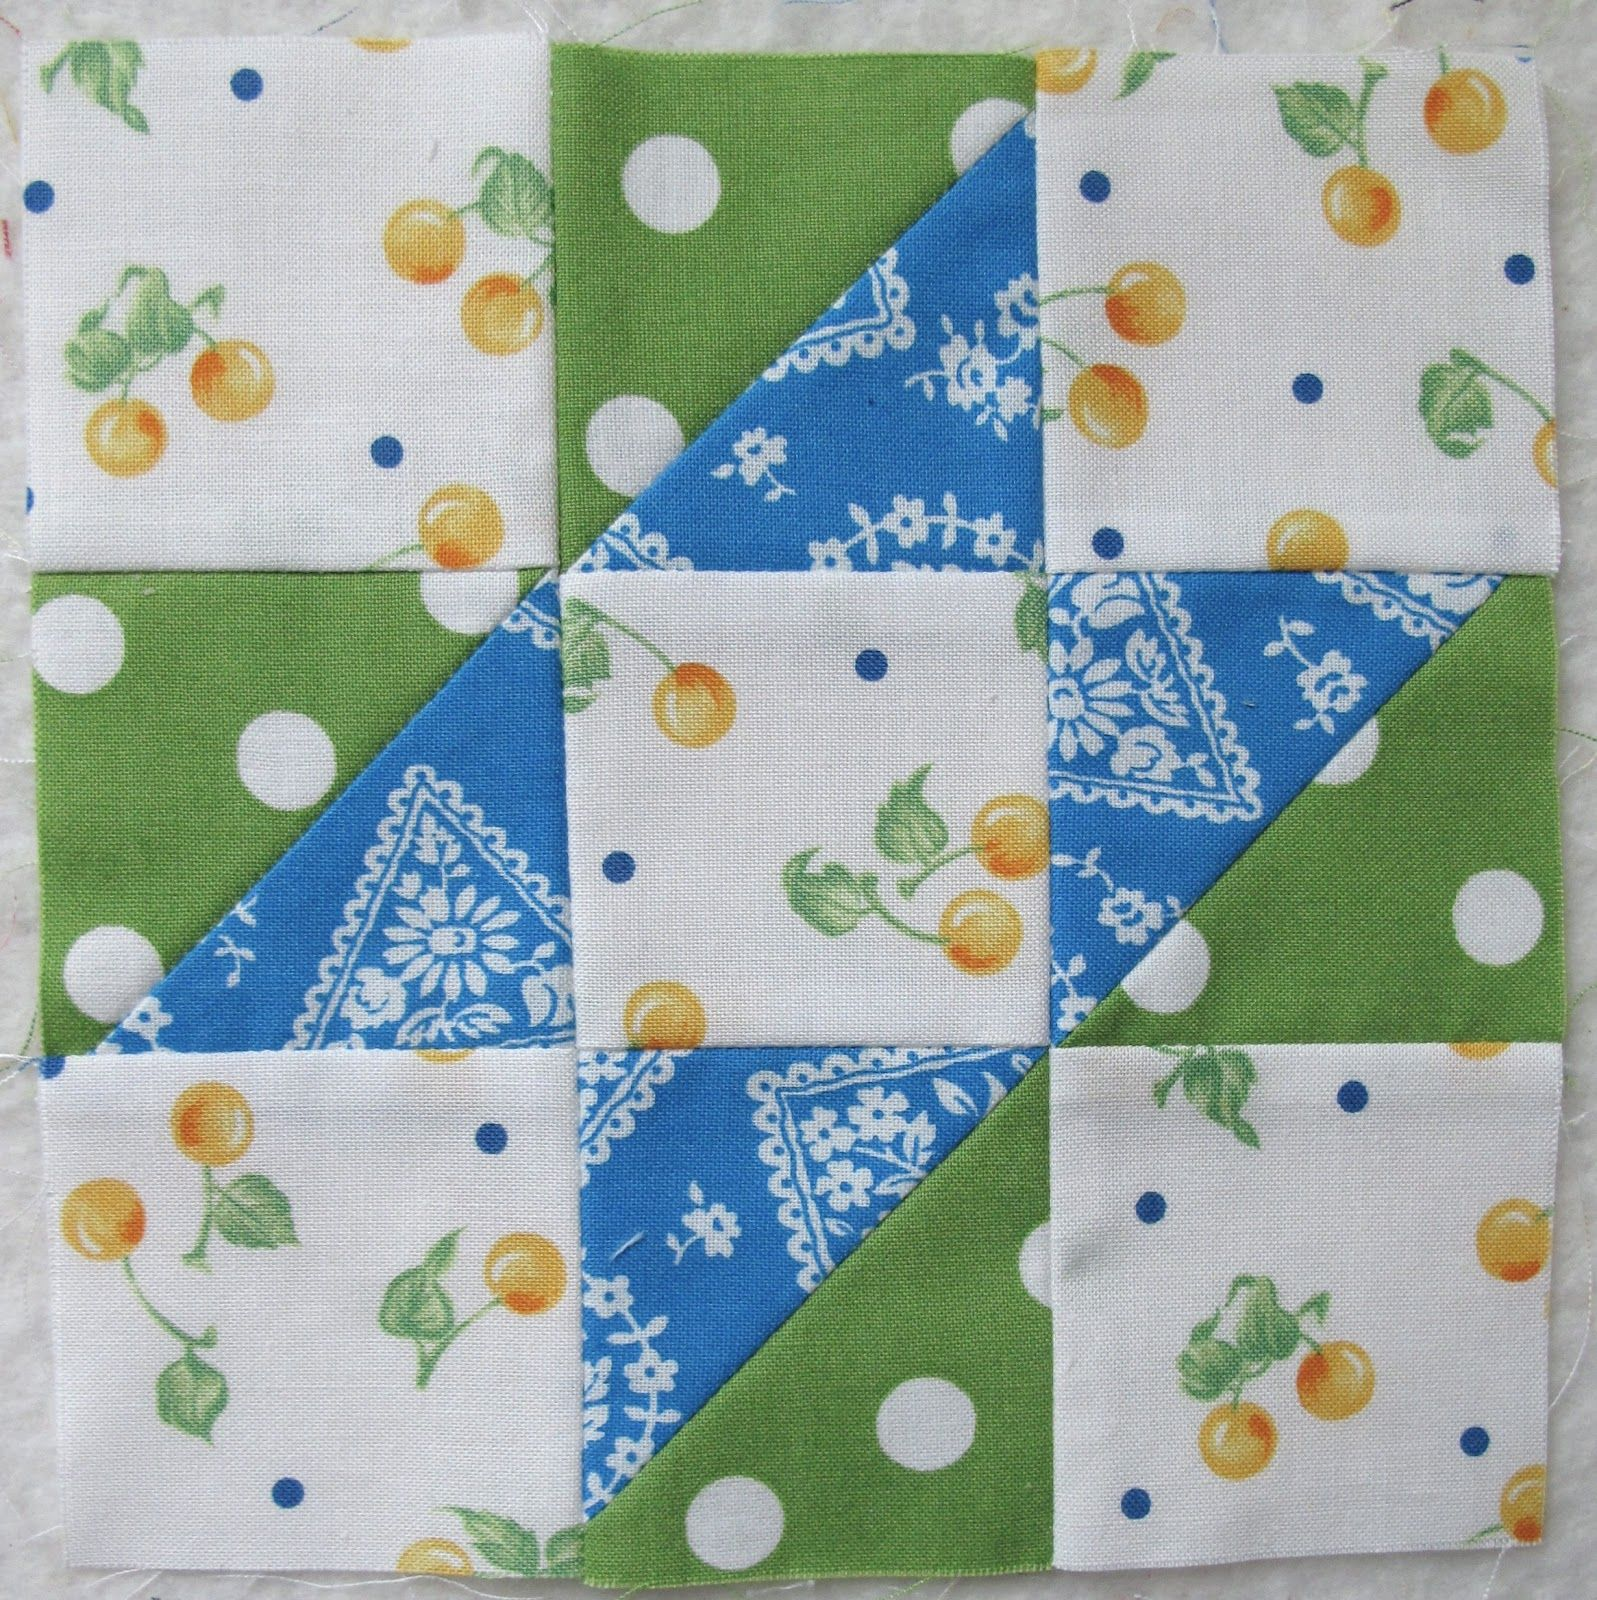 21 - Contrary Wife by Bee In My Bonnet | quilt blocks for ... : contrary wife quilt block - Adamdwight.com